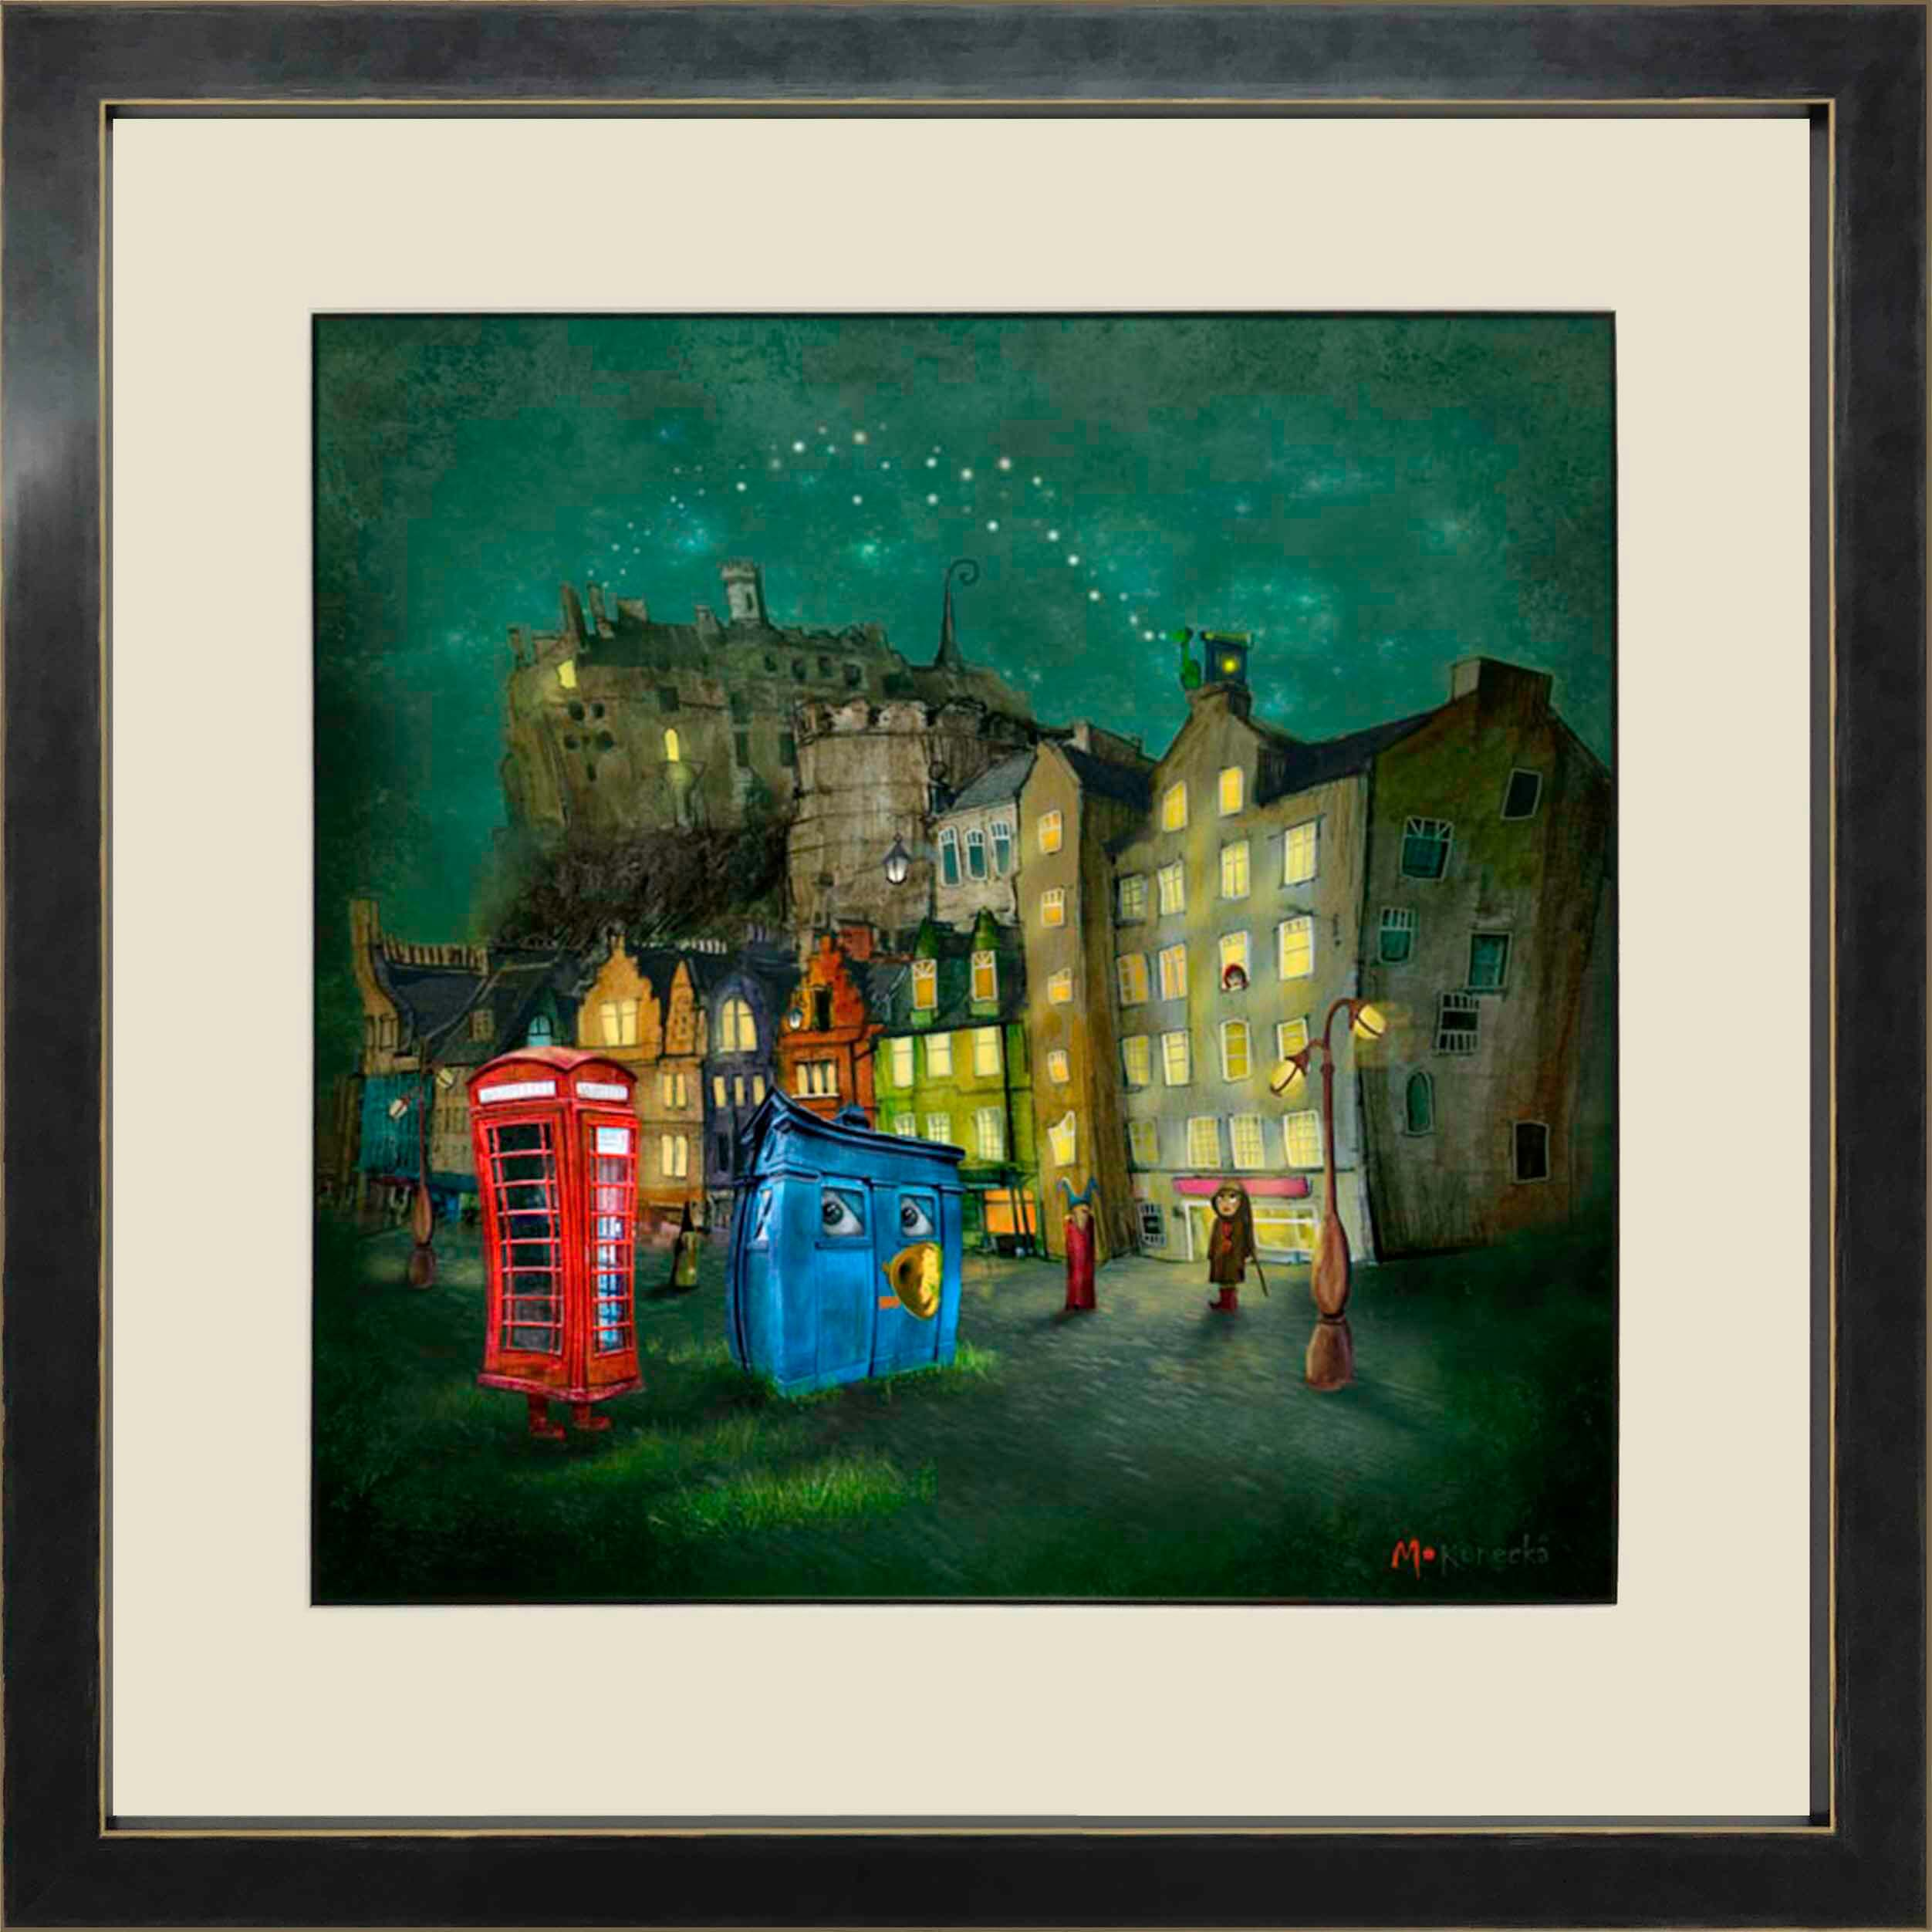 Strange Night (Grassmarket) by Matylda Konecha